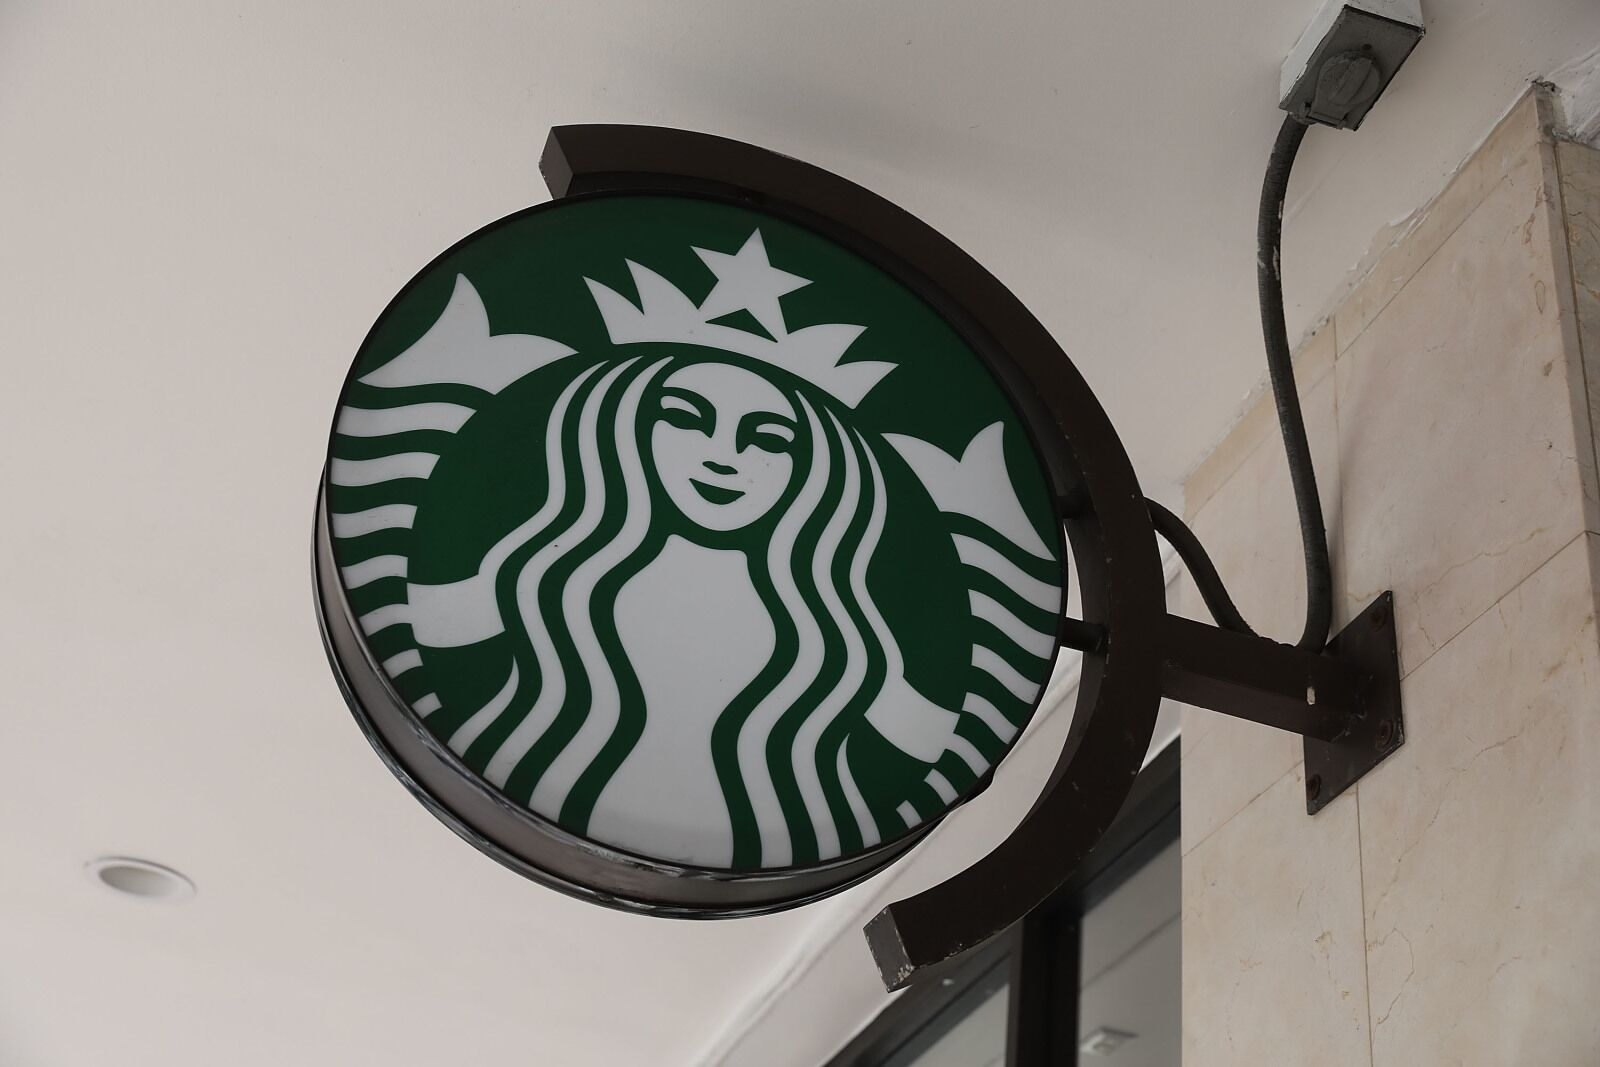 Starbucks brings new winter menu to keep you deliciously warm